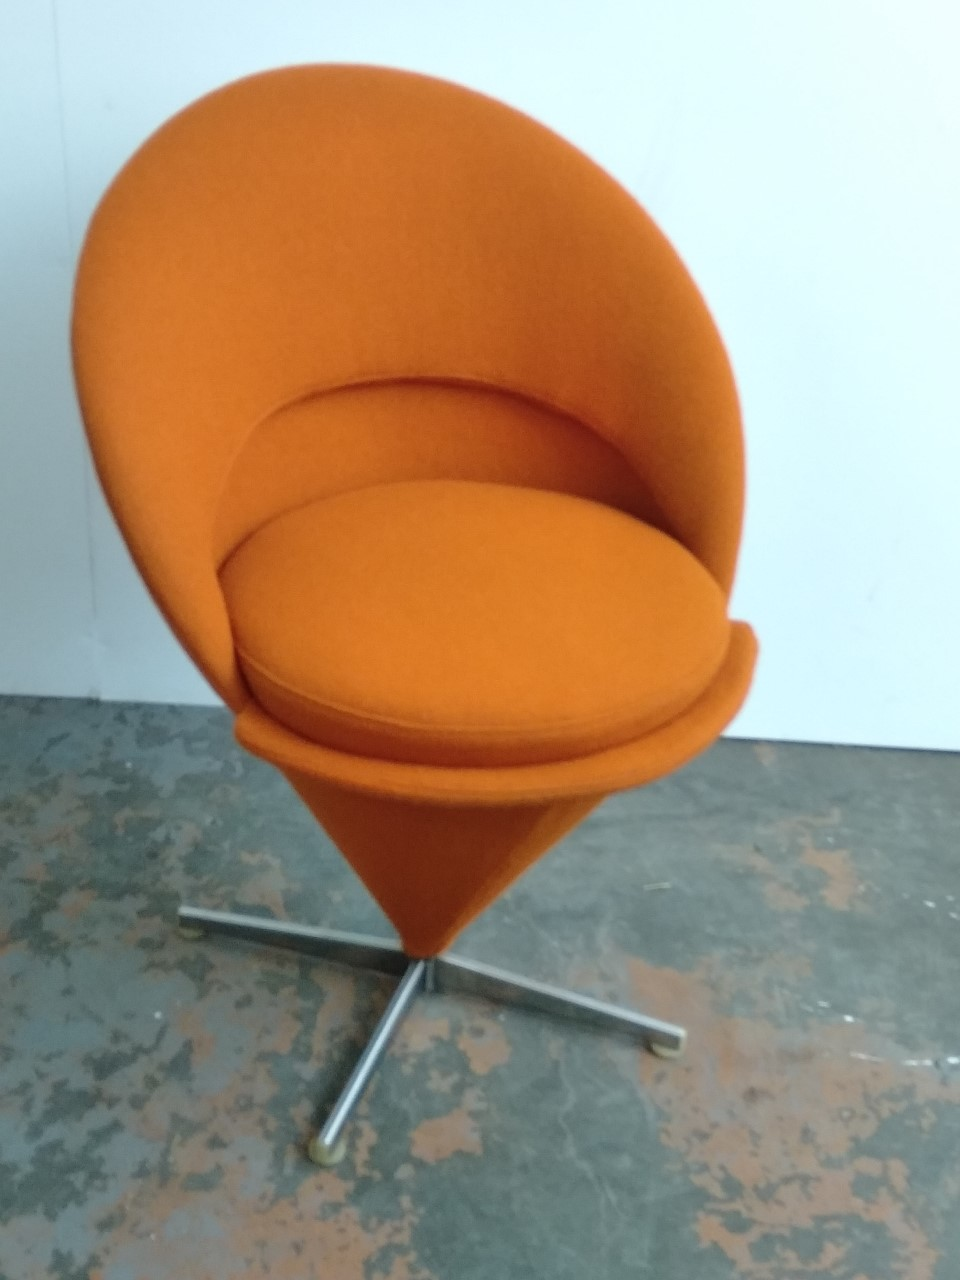 Cone Chair Verner Panton